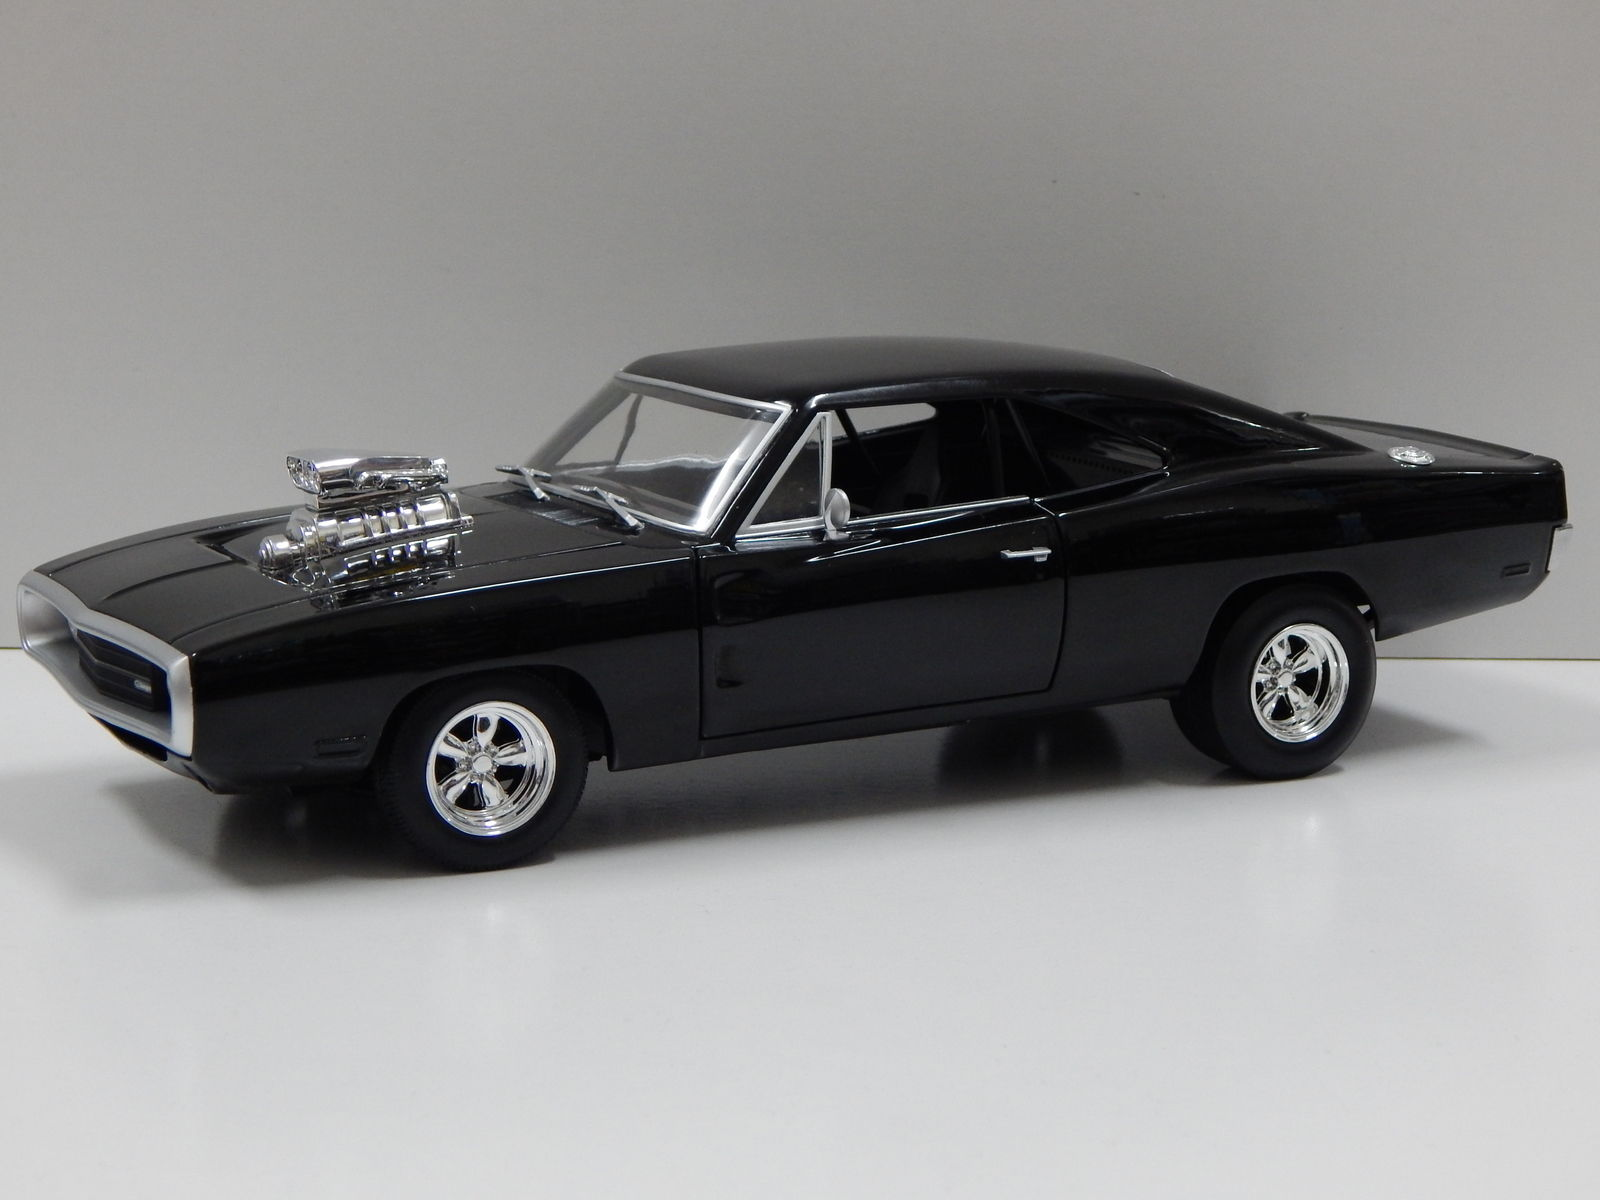 mattel hotwheels 1970 dodge charger 39 fast and furious 39 1 18 collectors diecast ebay. Black Bedroom Furniture Sets. Home Design Ideas